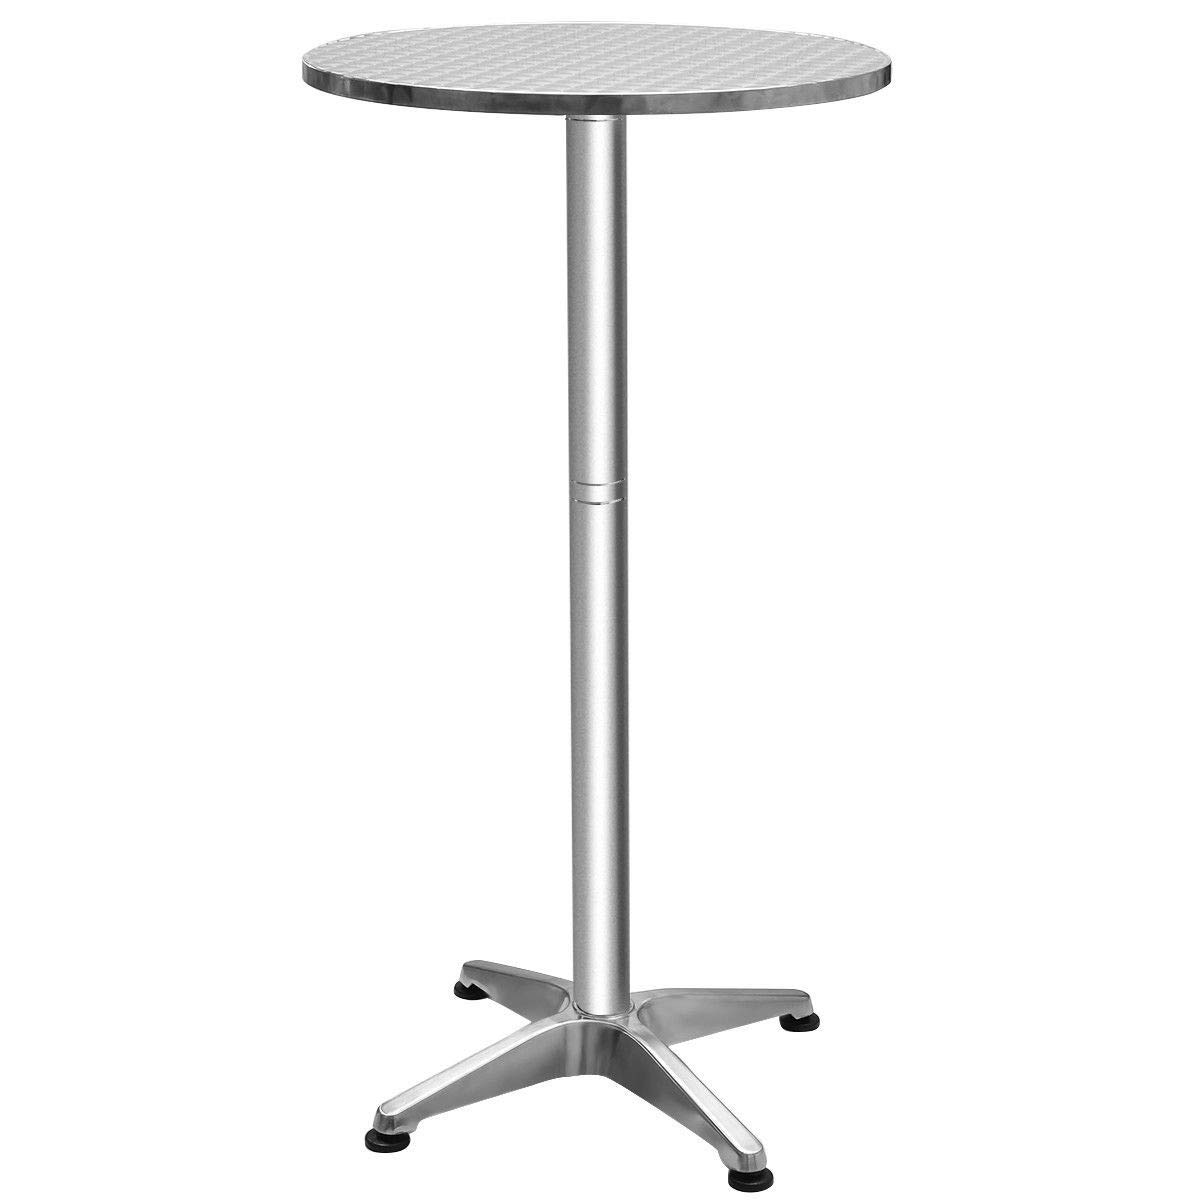 Stainless Steel Aluminium Round Folding Desktop Bar Table with Two Height Desktop Bar Table Pub Bistro Top Flash Restaurant Swivel and Counter Height Modern Kitchen Metal by EnjoyShop